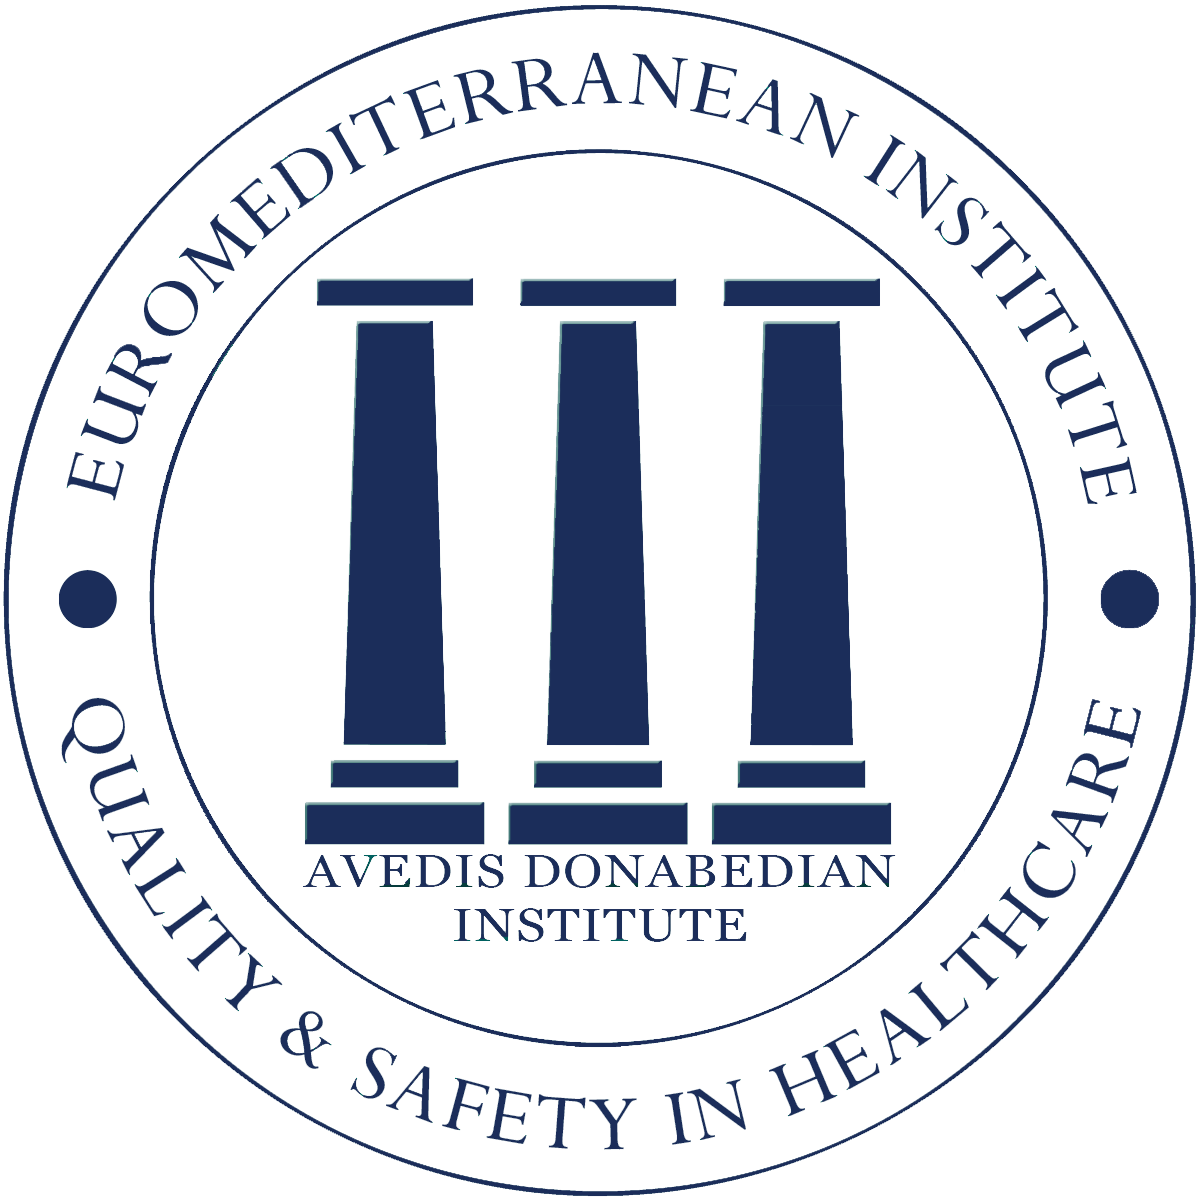 Euro-Mediterranean Institute for Quality and Safety in Health Services